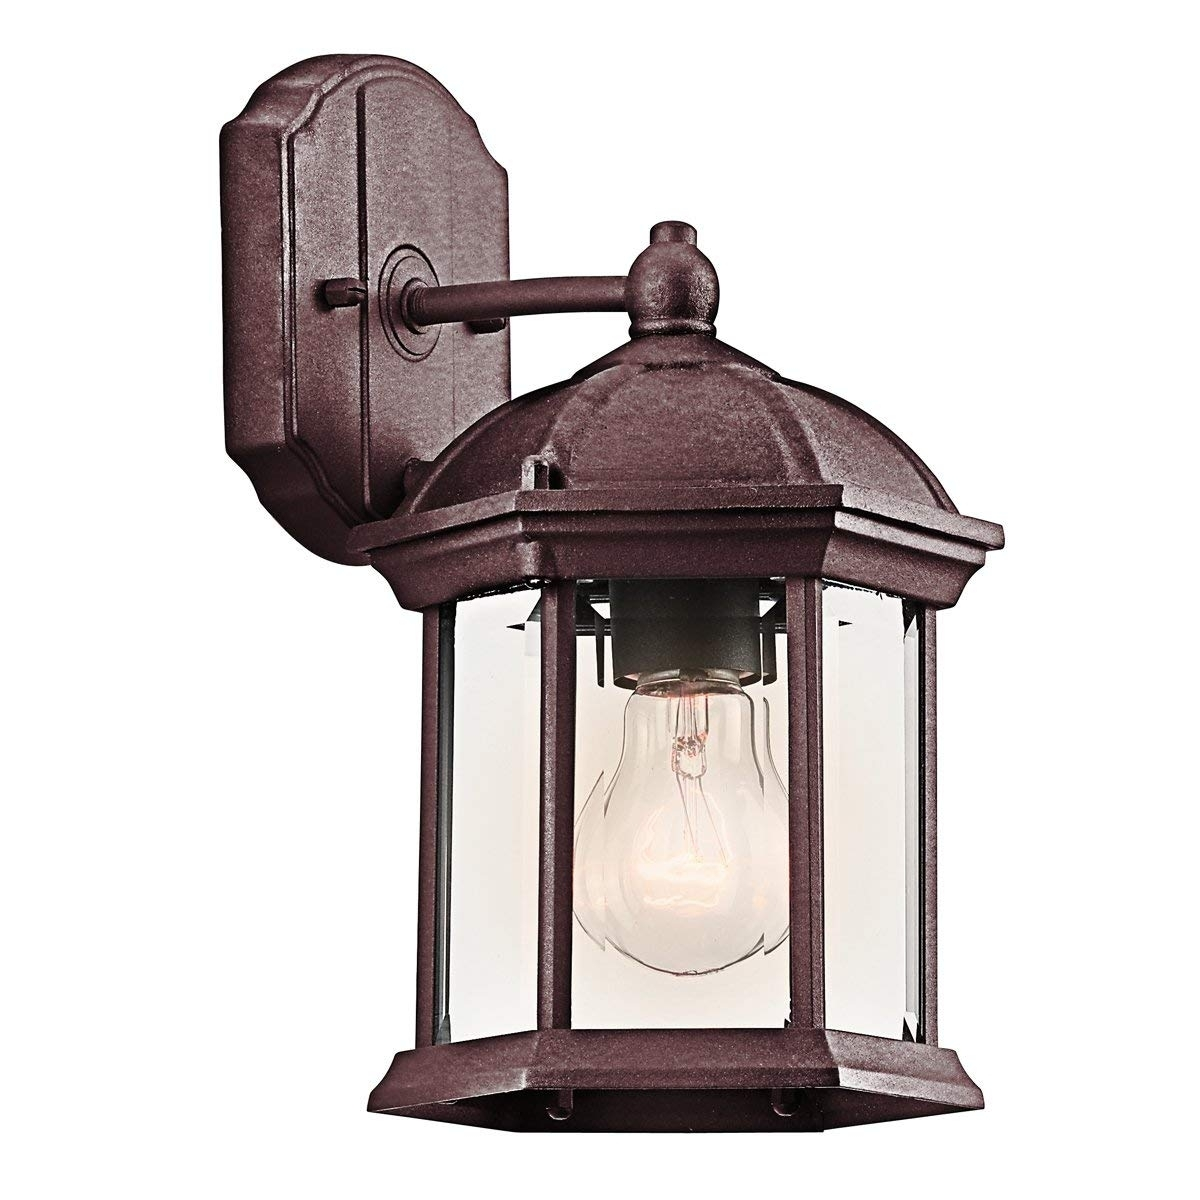 Kichler 9735Bk Barrie Outdoor Wall 1 Light, Black – Wall Porch For Kichler Outdoor Lanterns (Gallery 14 of 20)